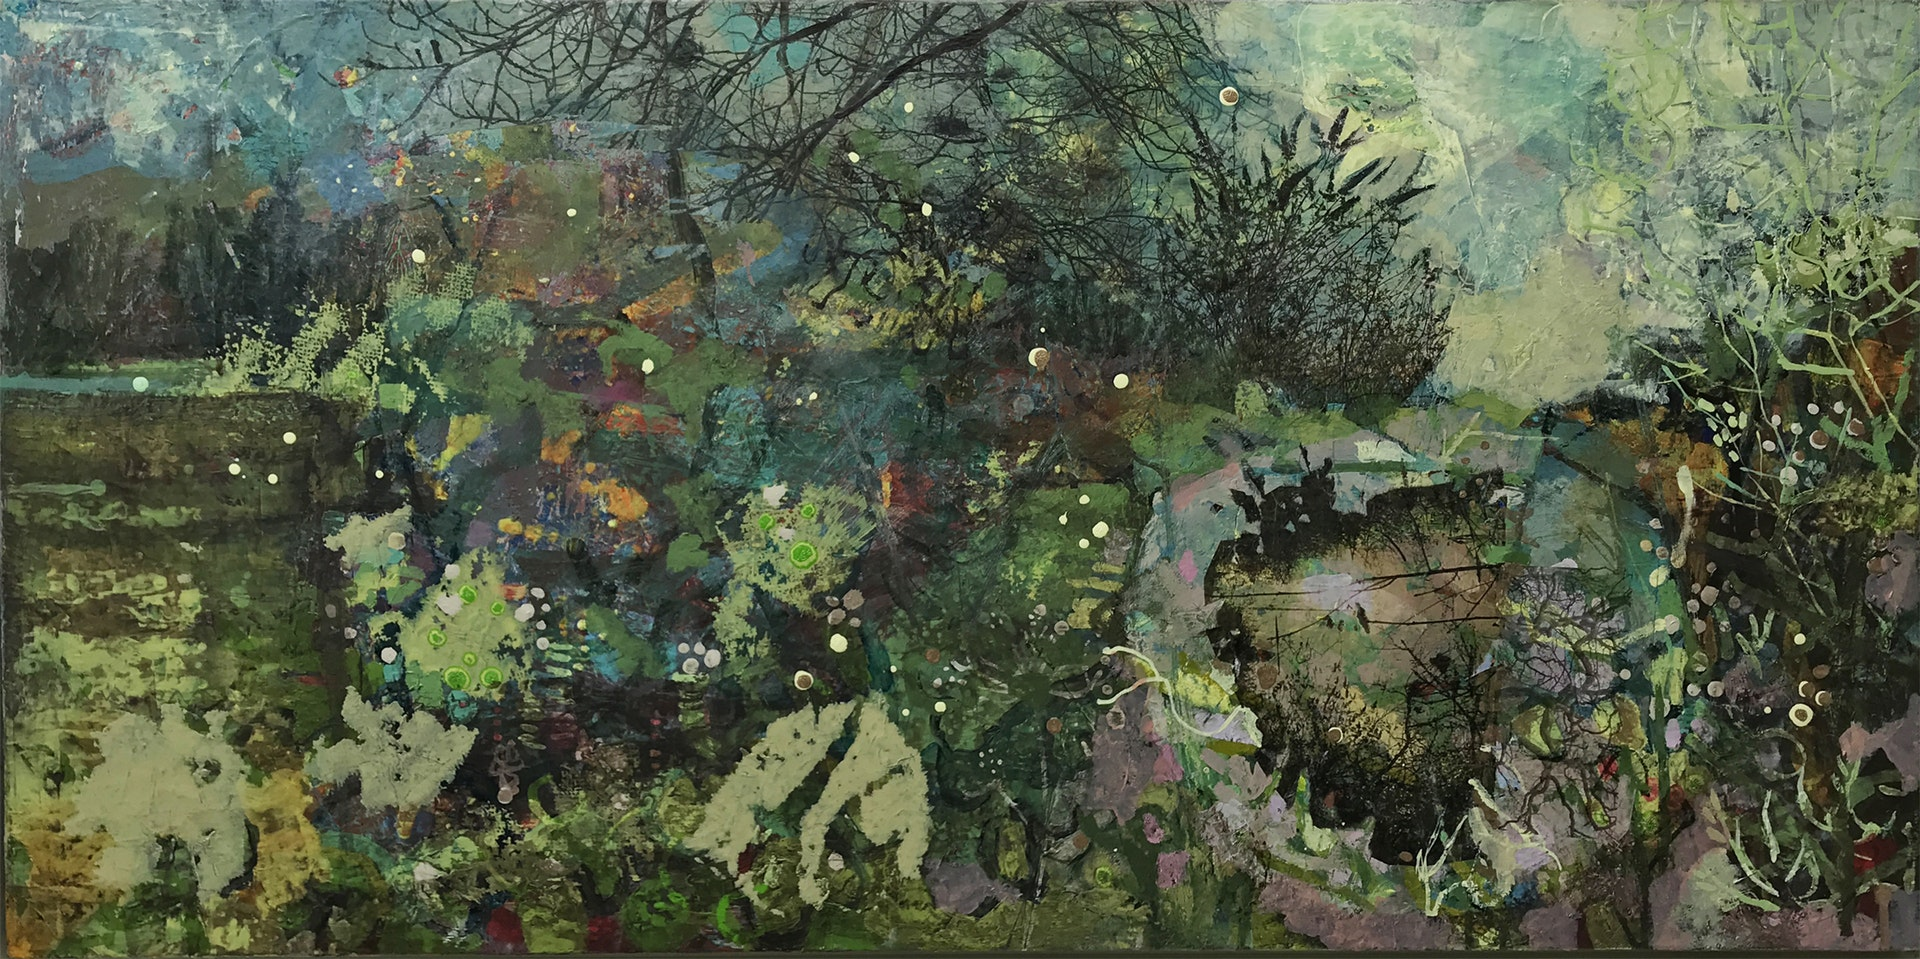 Frances Ryan  January Culvert  Oil and Collage on Canvas, 40 x 80 x 2 cm  http://www.francesryan.com